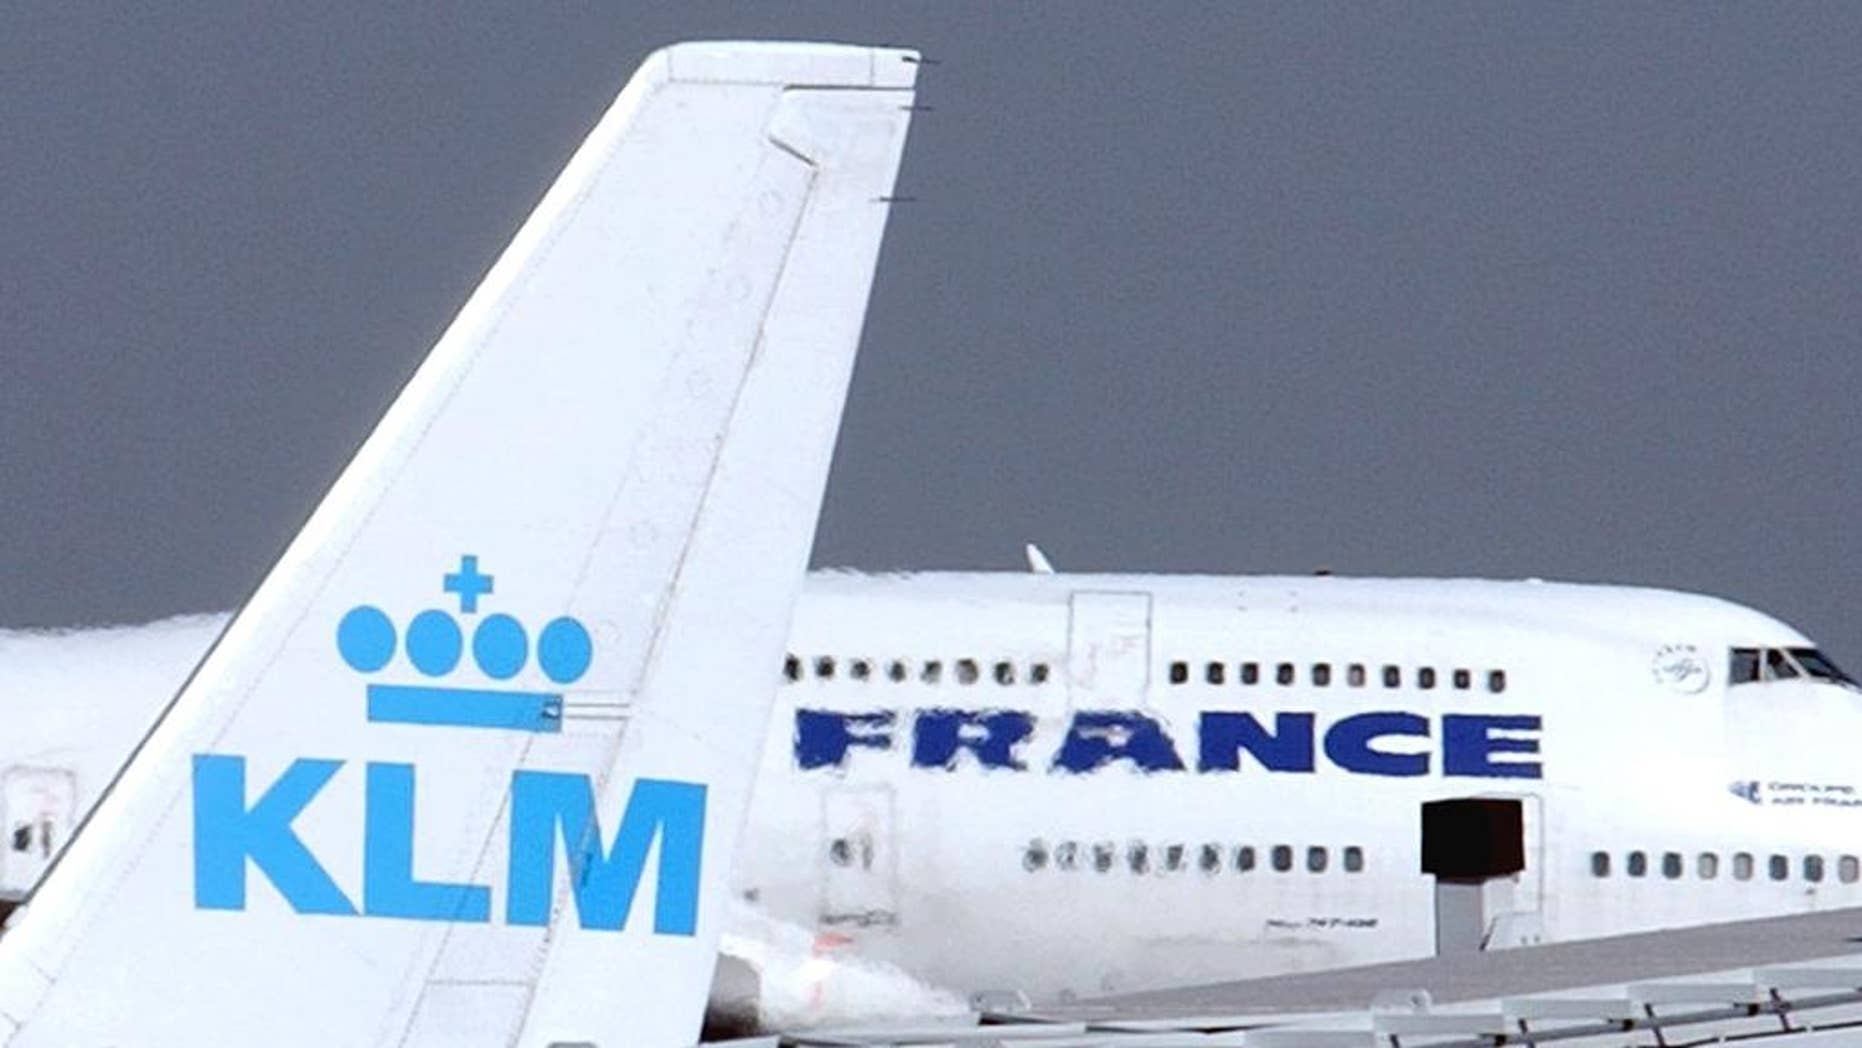 """FILE -- In this Sept. 30, 2003 file photo, an Air France jumbo jet rolls behind the tail of a KLM Royal Dutch airliner at Charles de Gaulle airport in Roissy, north of Paris. KLM said Wednesday, Sept. 14, 2016 that it will temporarily suspend flights to and from Cairo in January, citing """"economic reasons."""" The Royal Dutch Airlines' statement said the devaluation of the Egyptian pound and restrictions imposed by the country's central bank on the transfer of foreign currency out of Egypt are behind the decision. (AP Photo/Remy de la Mauviniere, File)"""